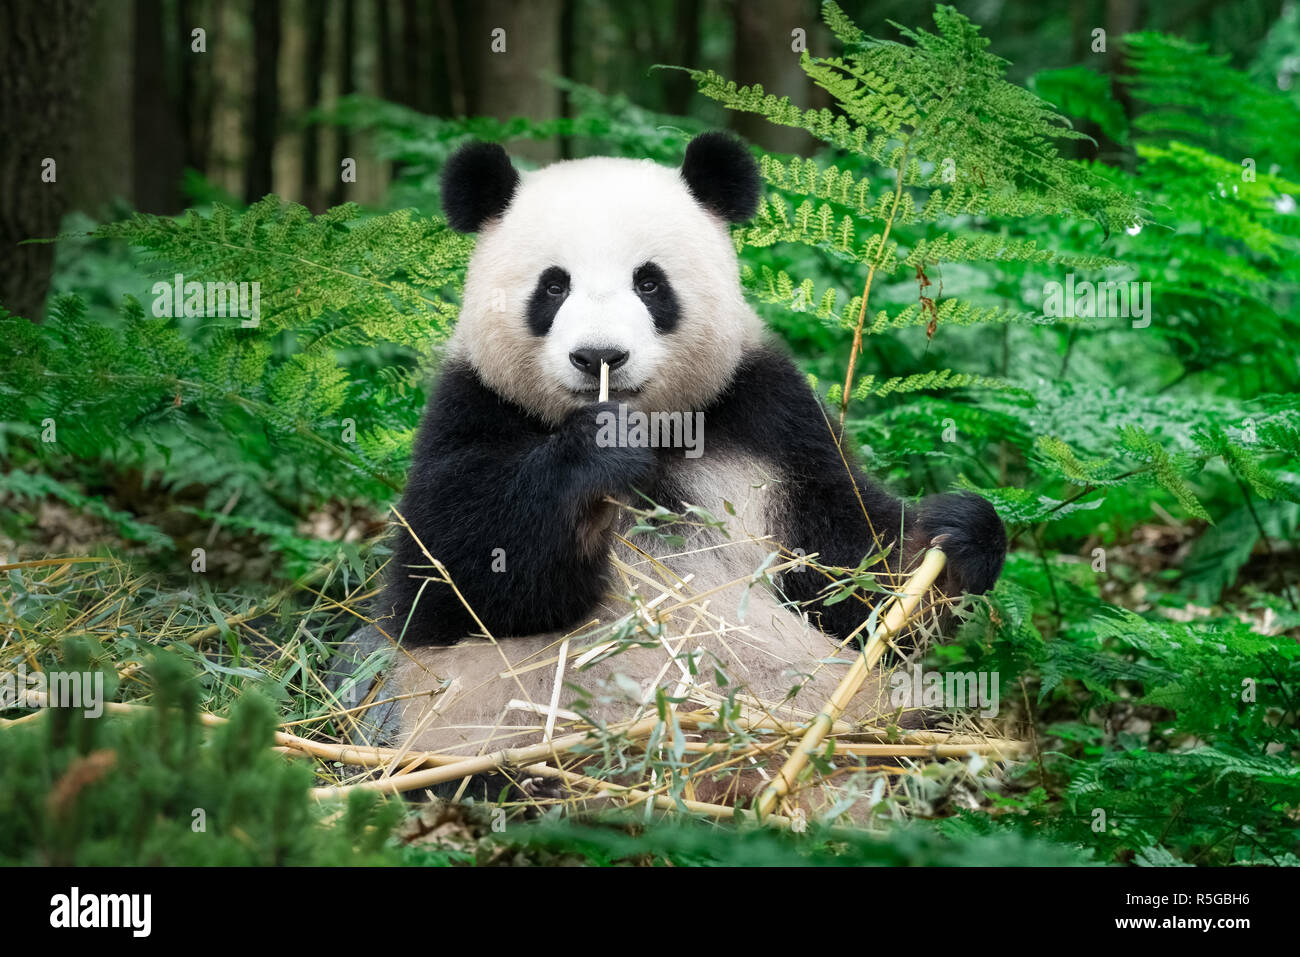 panda is sitting in the rainforest eating bamboo - Stock Image